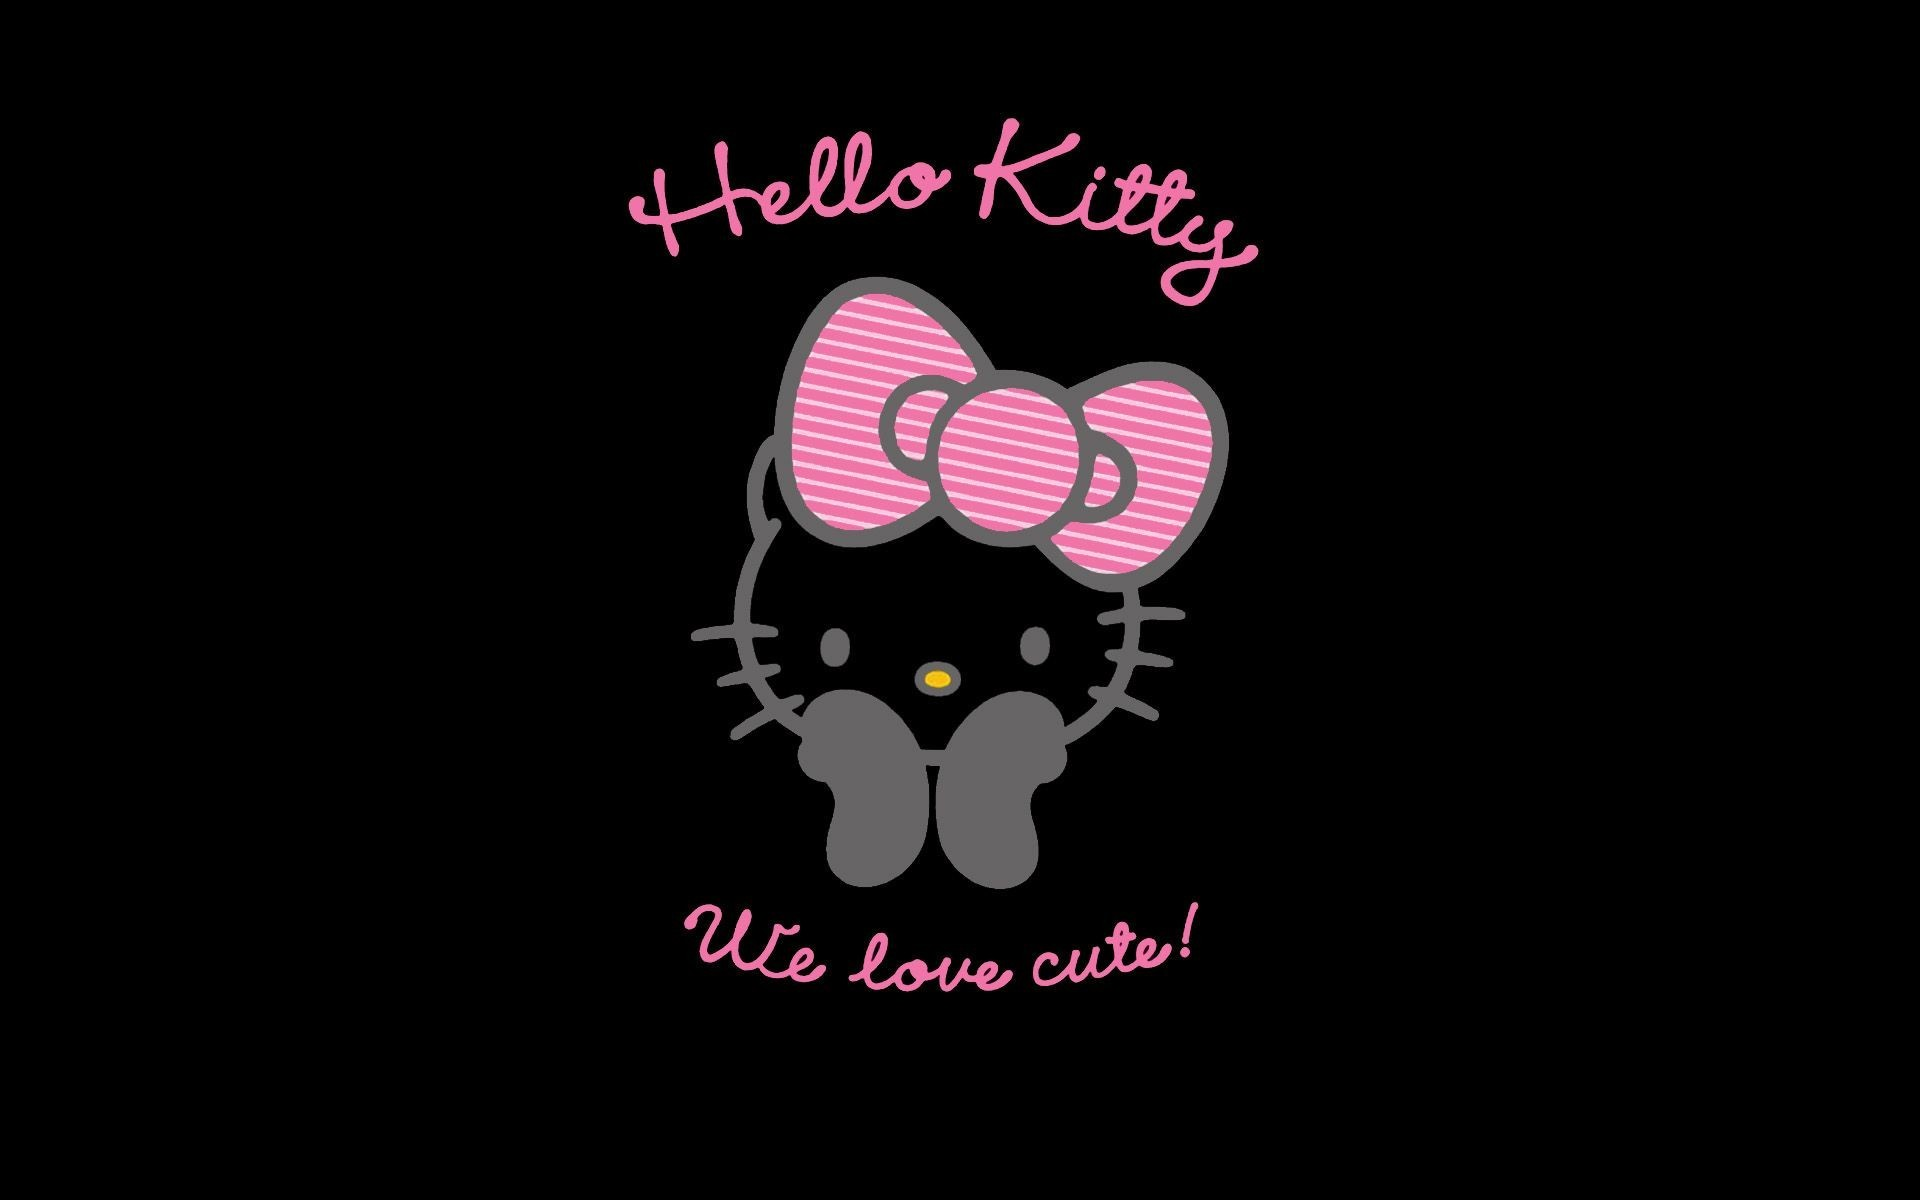 1920x1200  90+ Hello Kitty Wallpaper Backgrounds